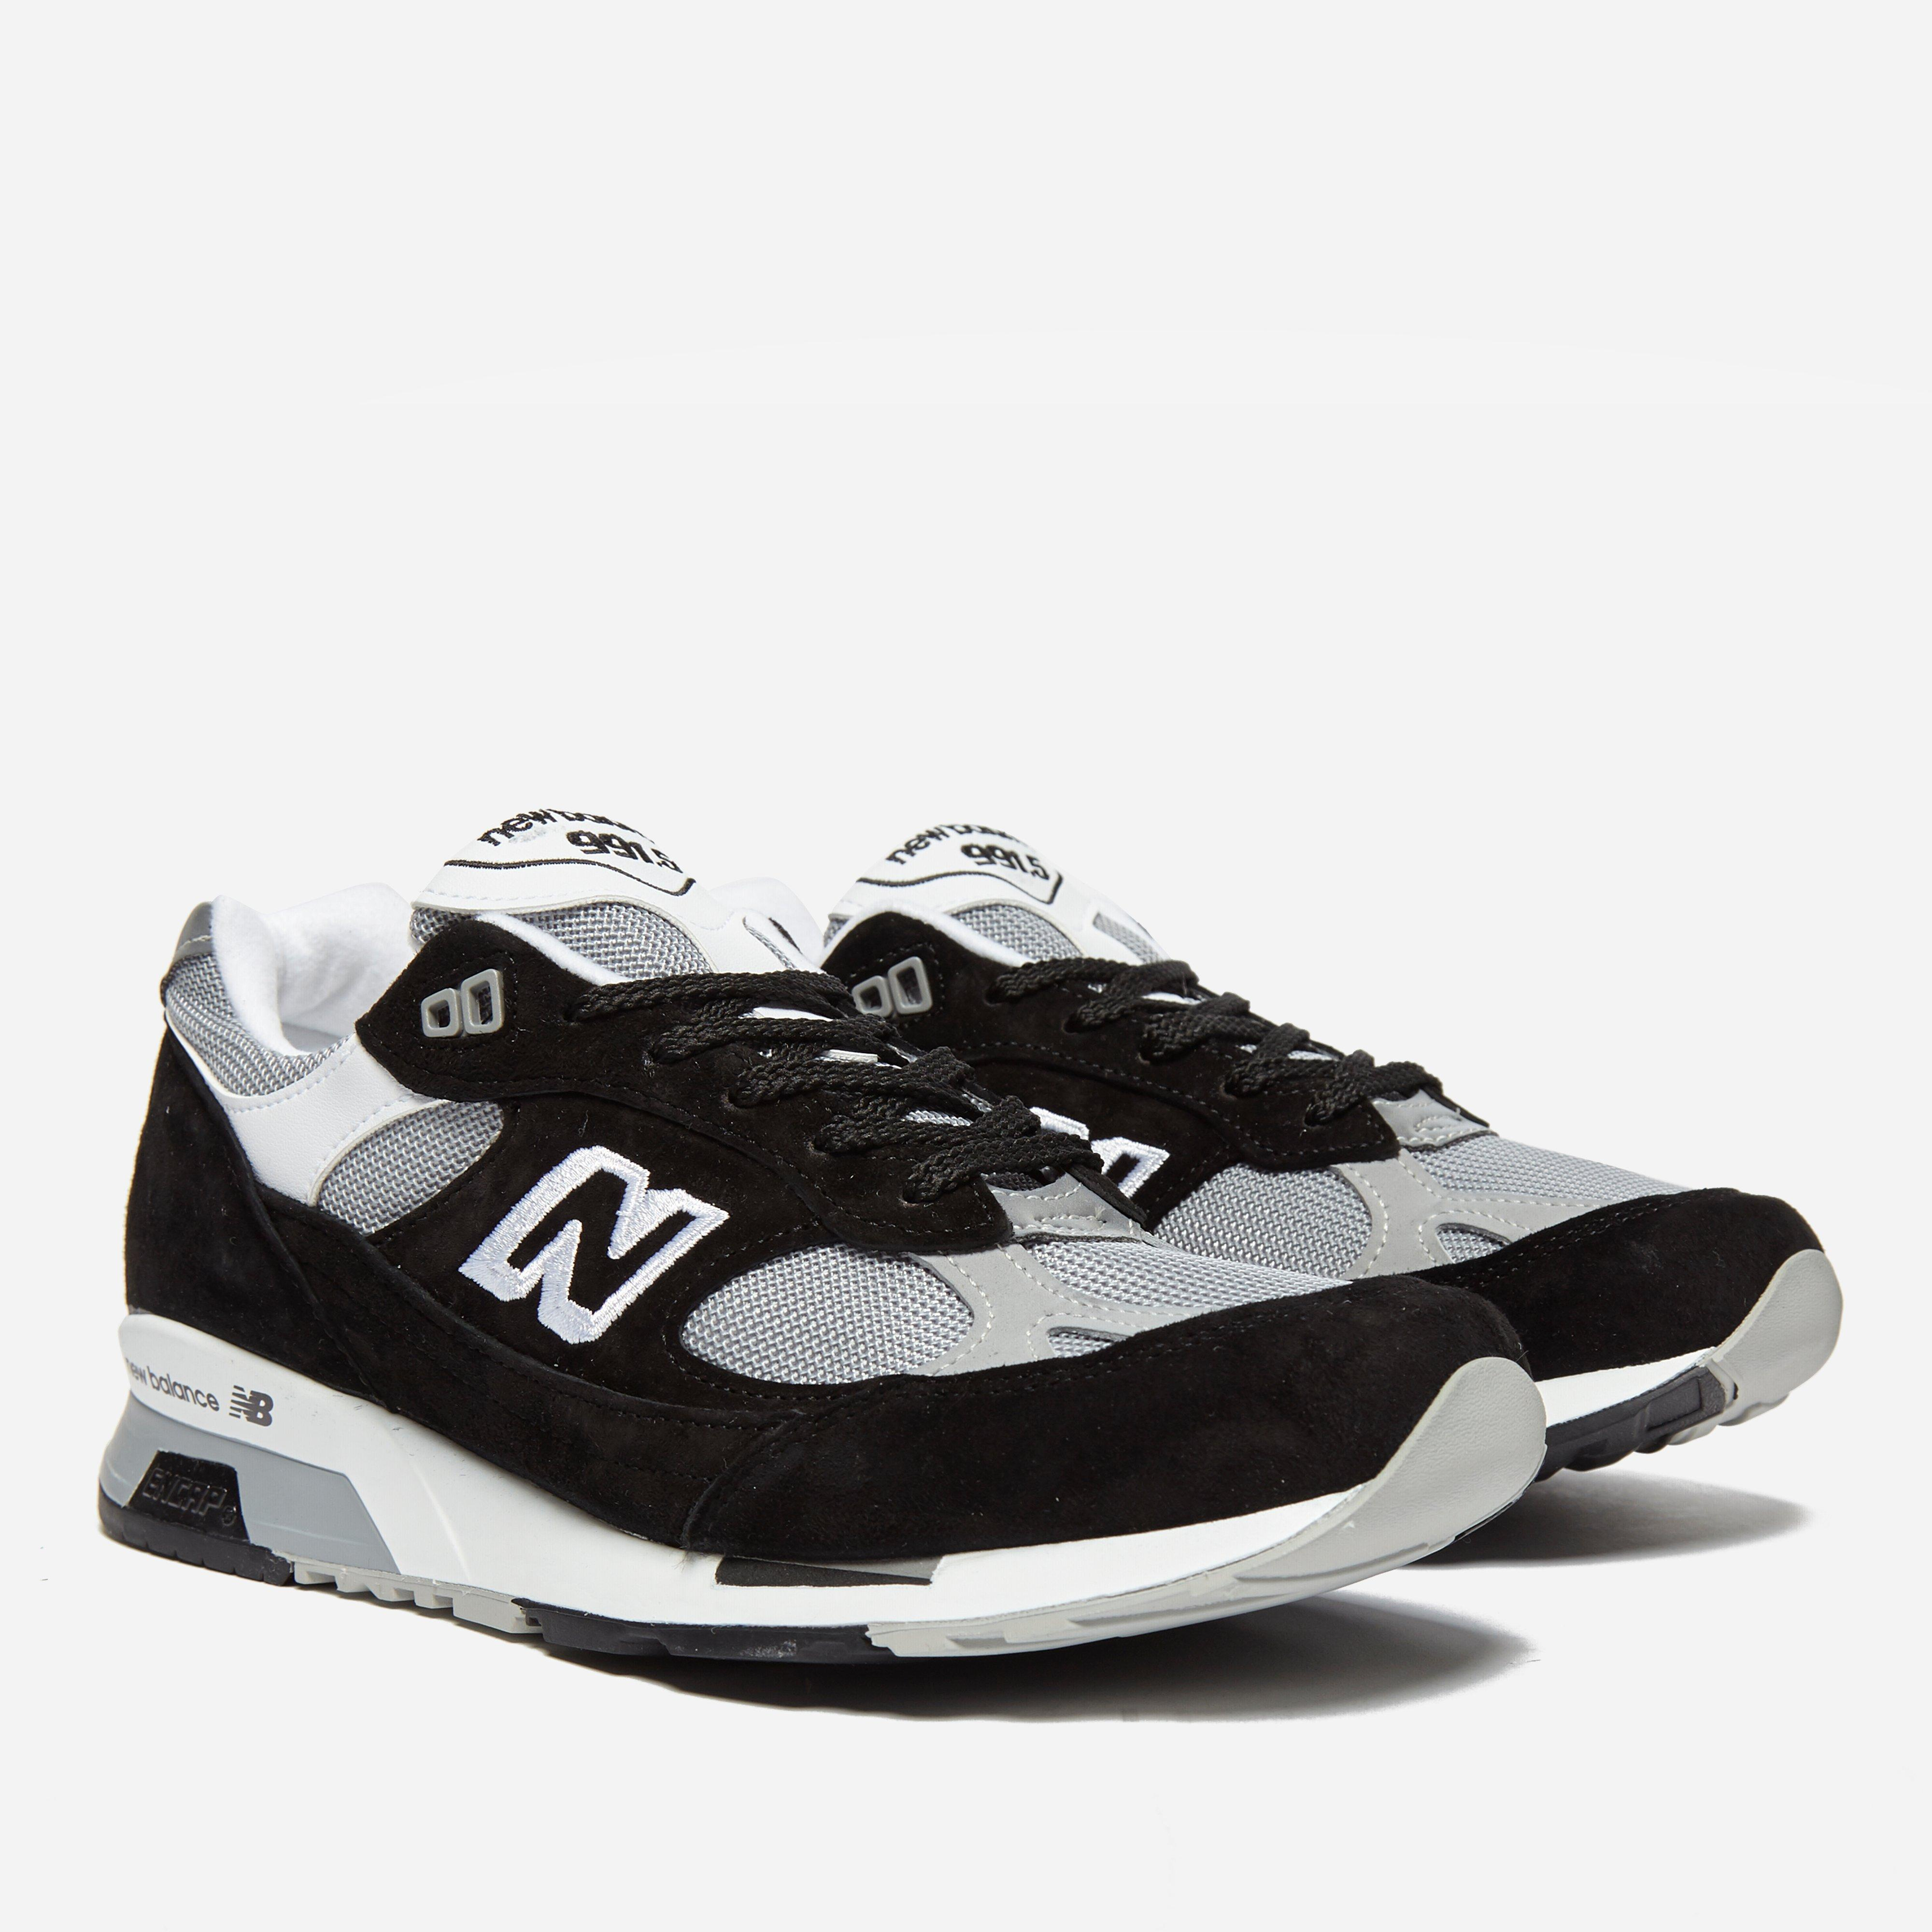 New Balance M 991.5 BB '991 / 1500' Made in England